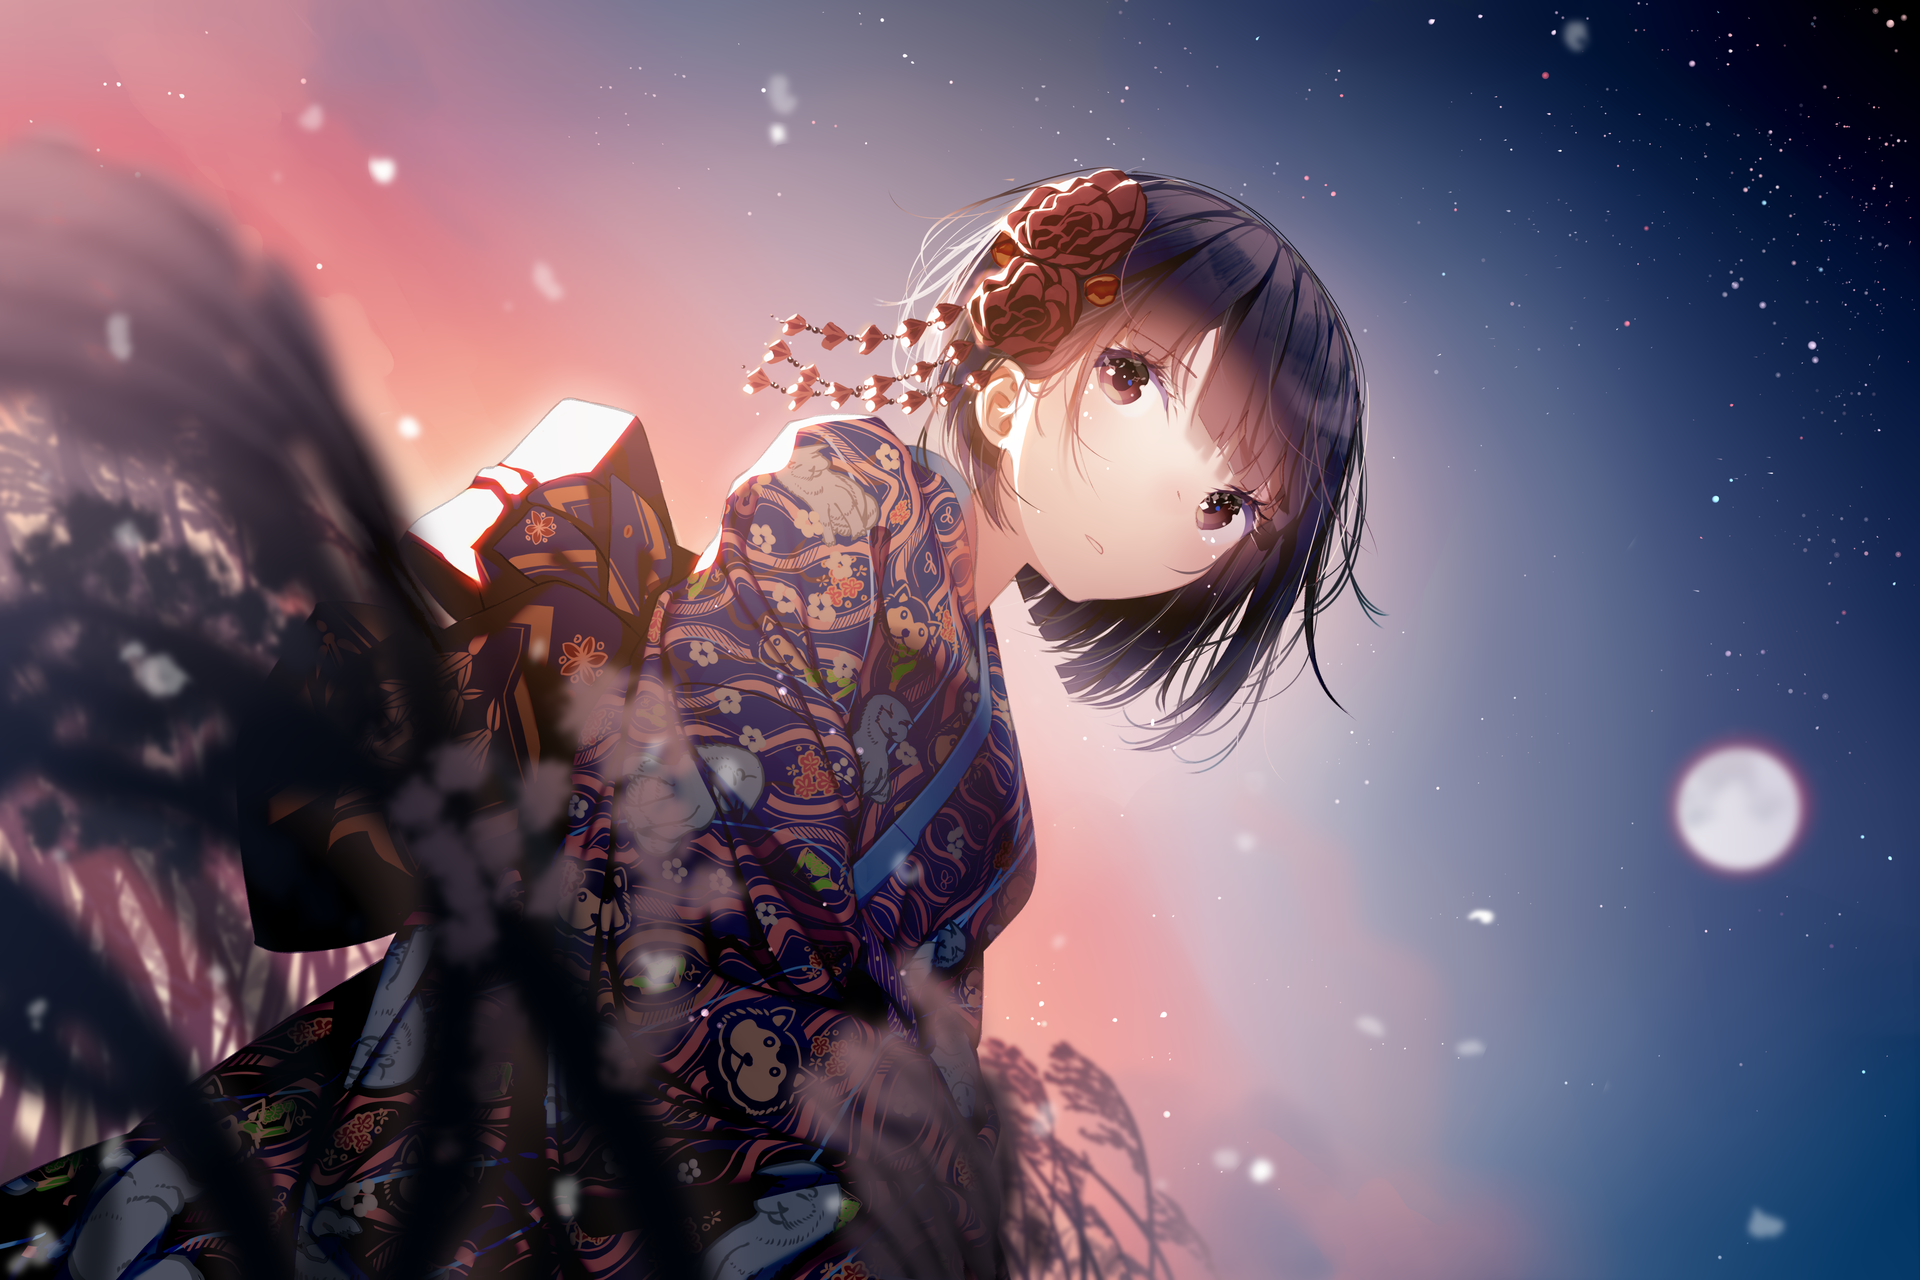 New Year Anime Girl Wallpapers - Wallpaper Cave